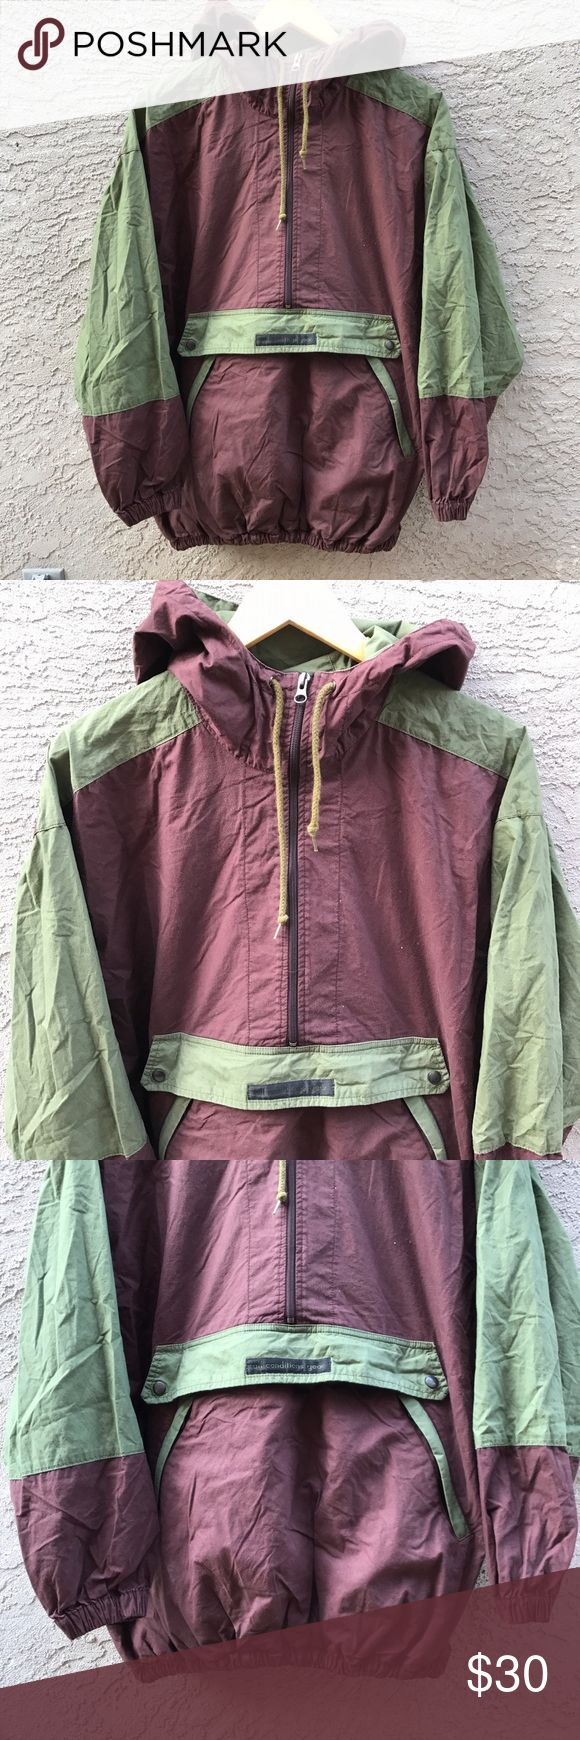 Nike acg jacket og men Nike og acg jacket // brown and green //windbreaker with pouch , hoodie , pockets // great condition men's medium / Nike Jackets & Coats